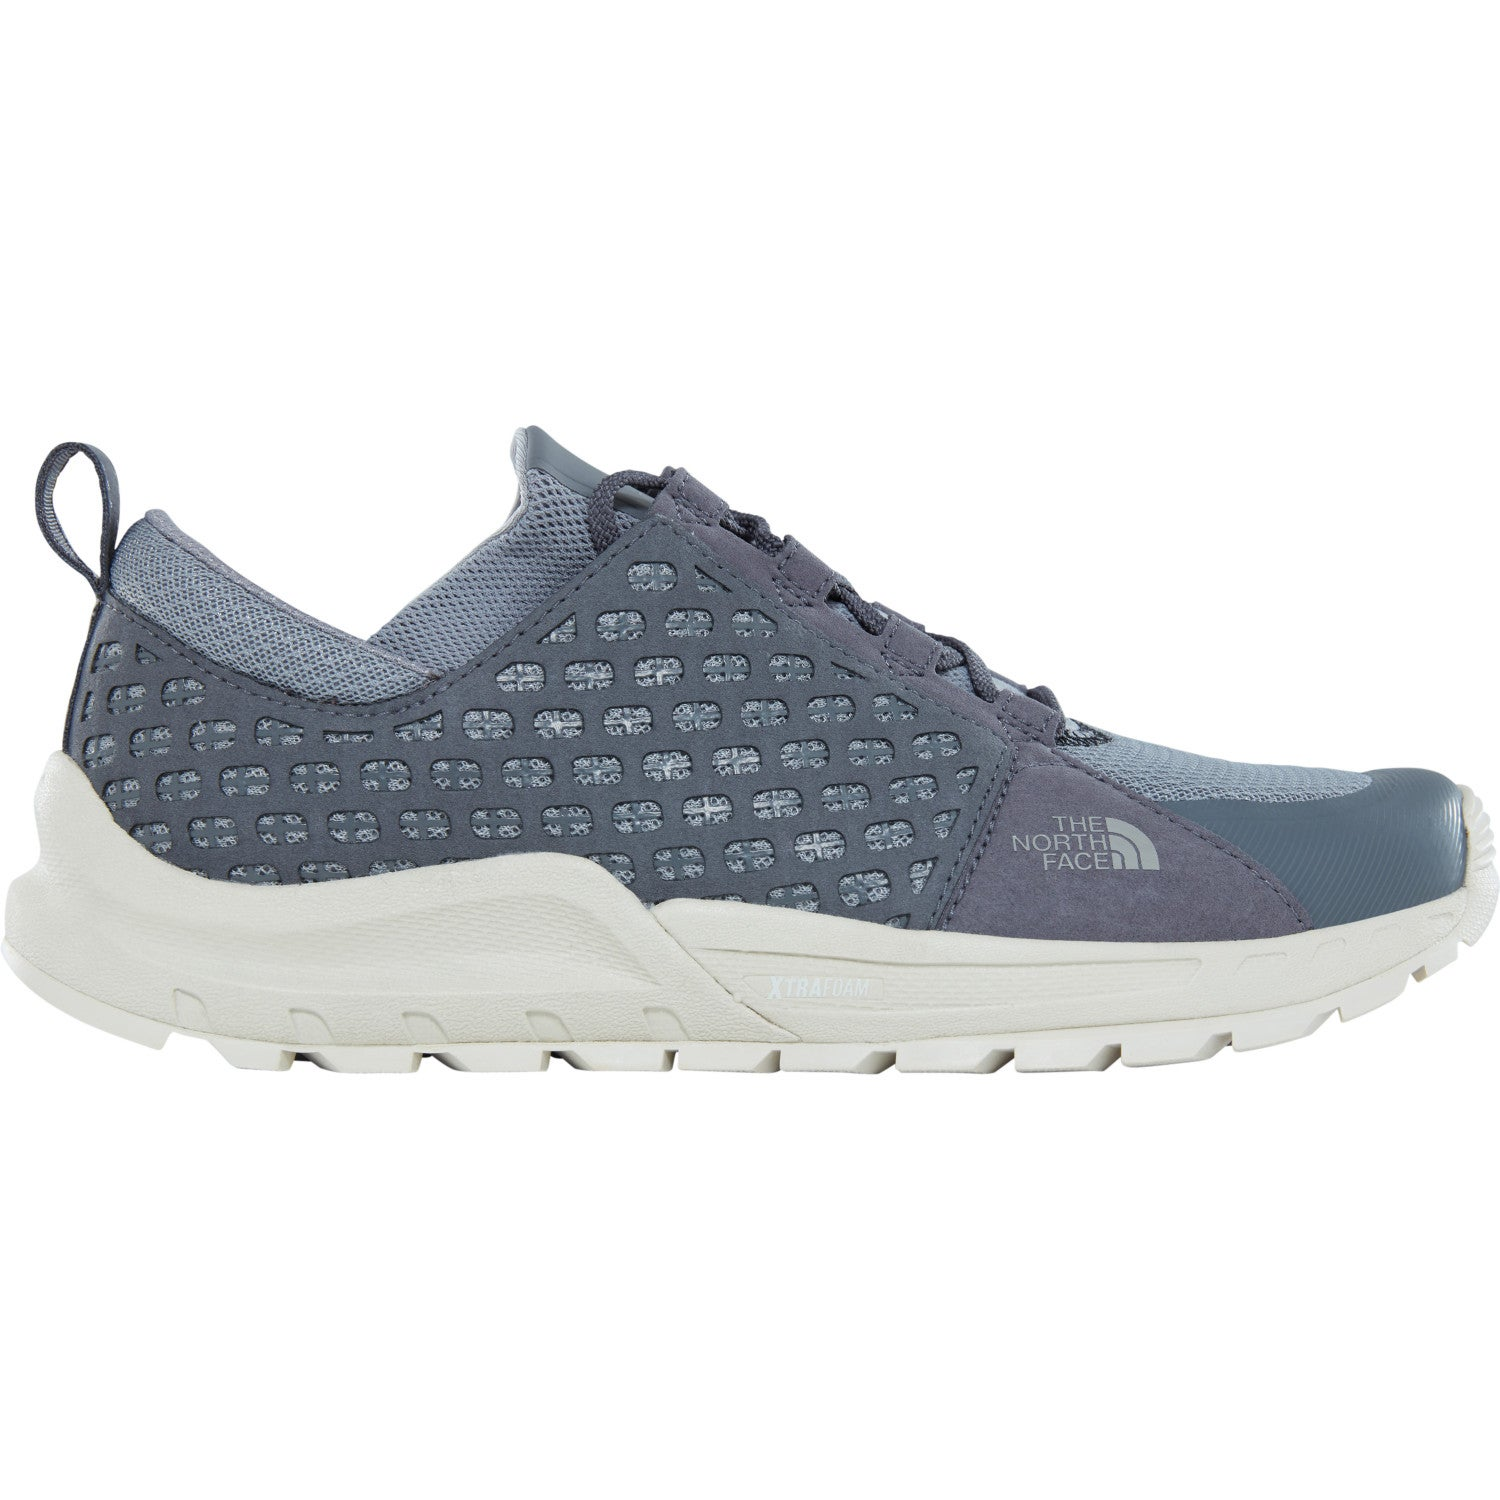 new products 6d8d8 4cd11 North Face Mountain Sneaker Mens Shoe at Extremepie.com